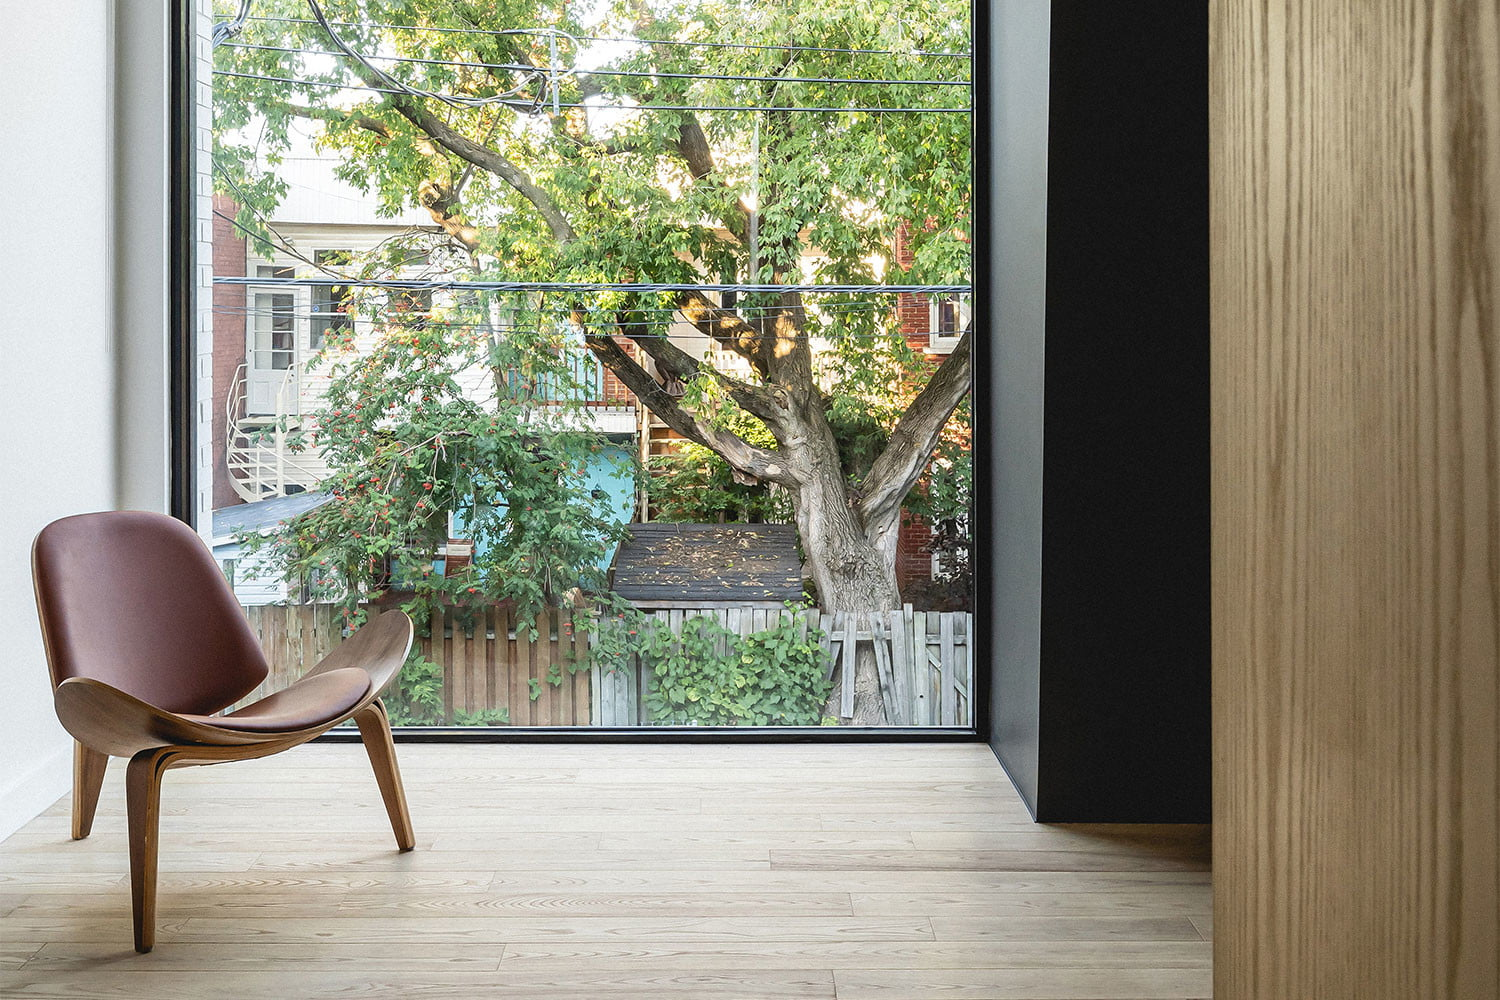 olivier nelson residence nature humaine architecture design 5